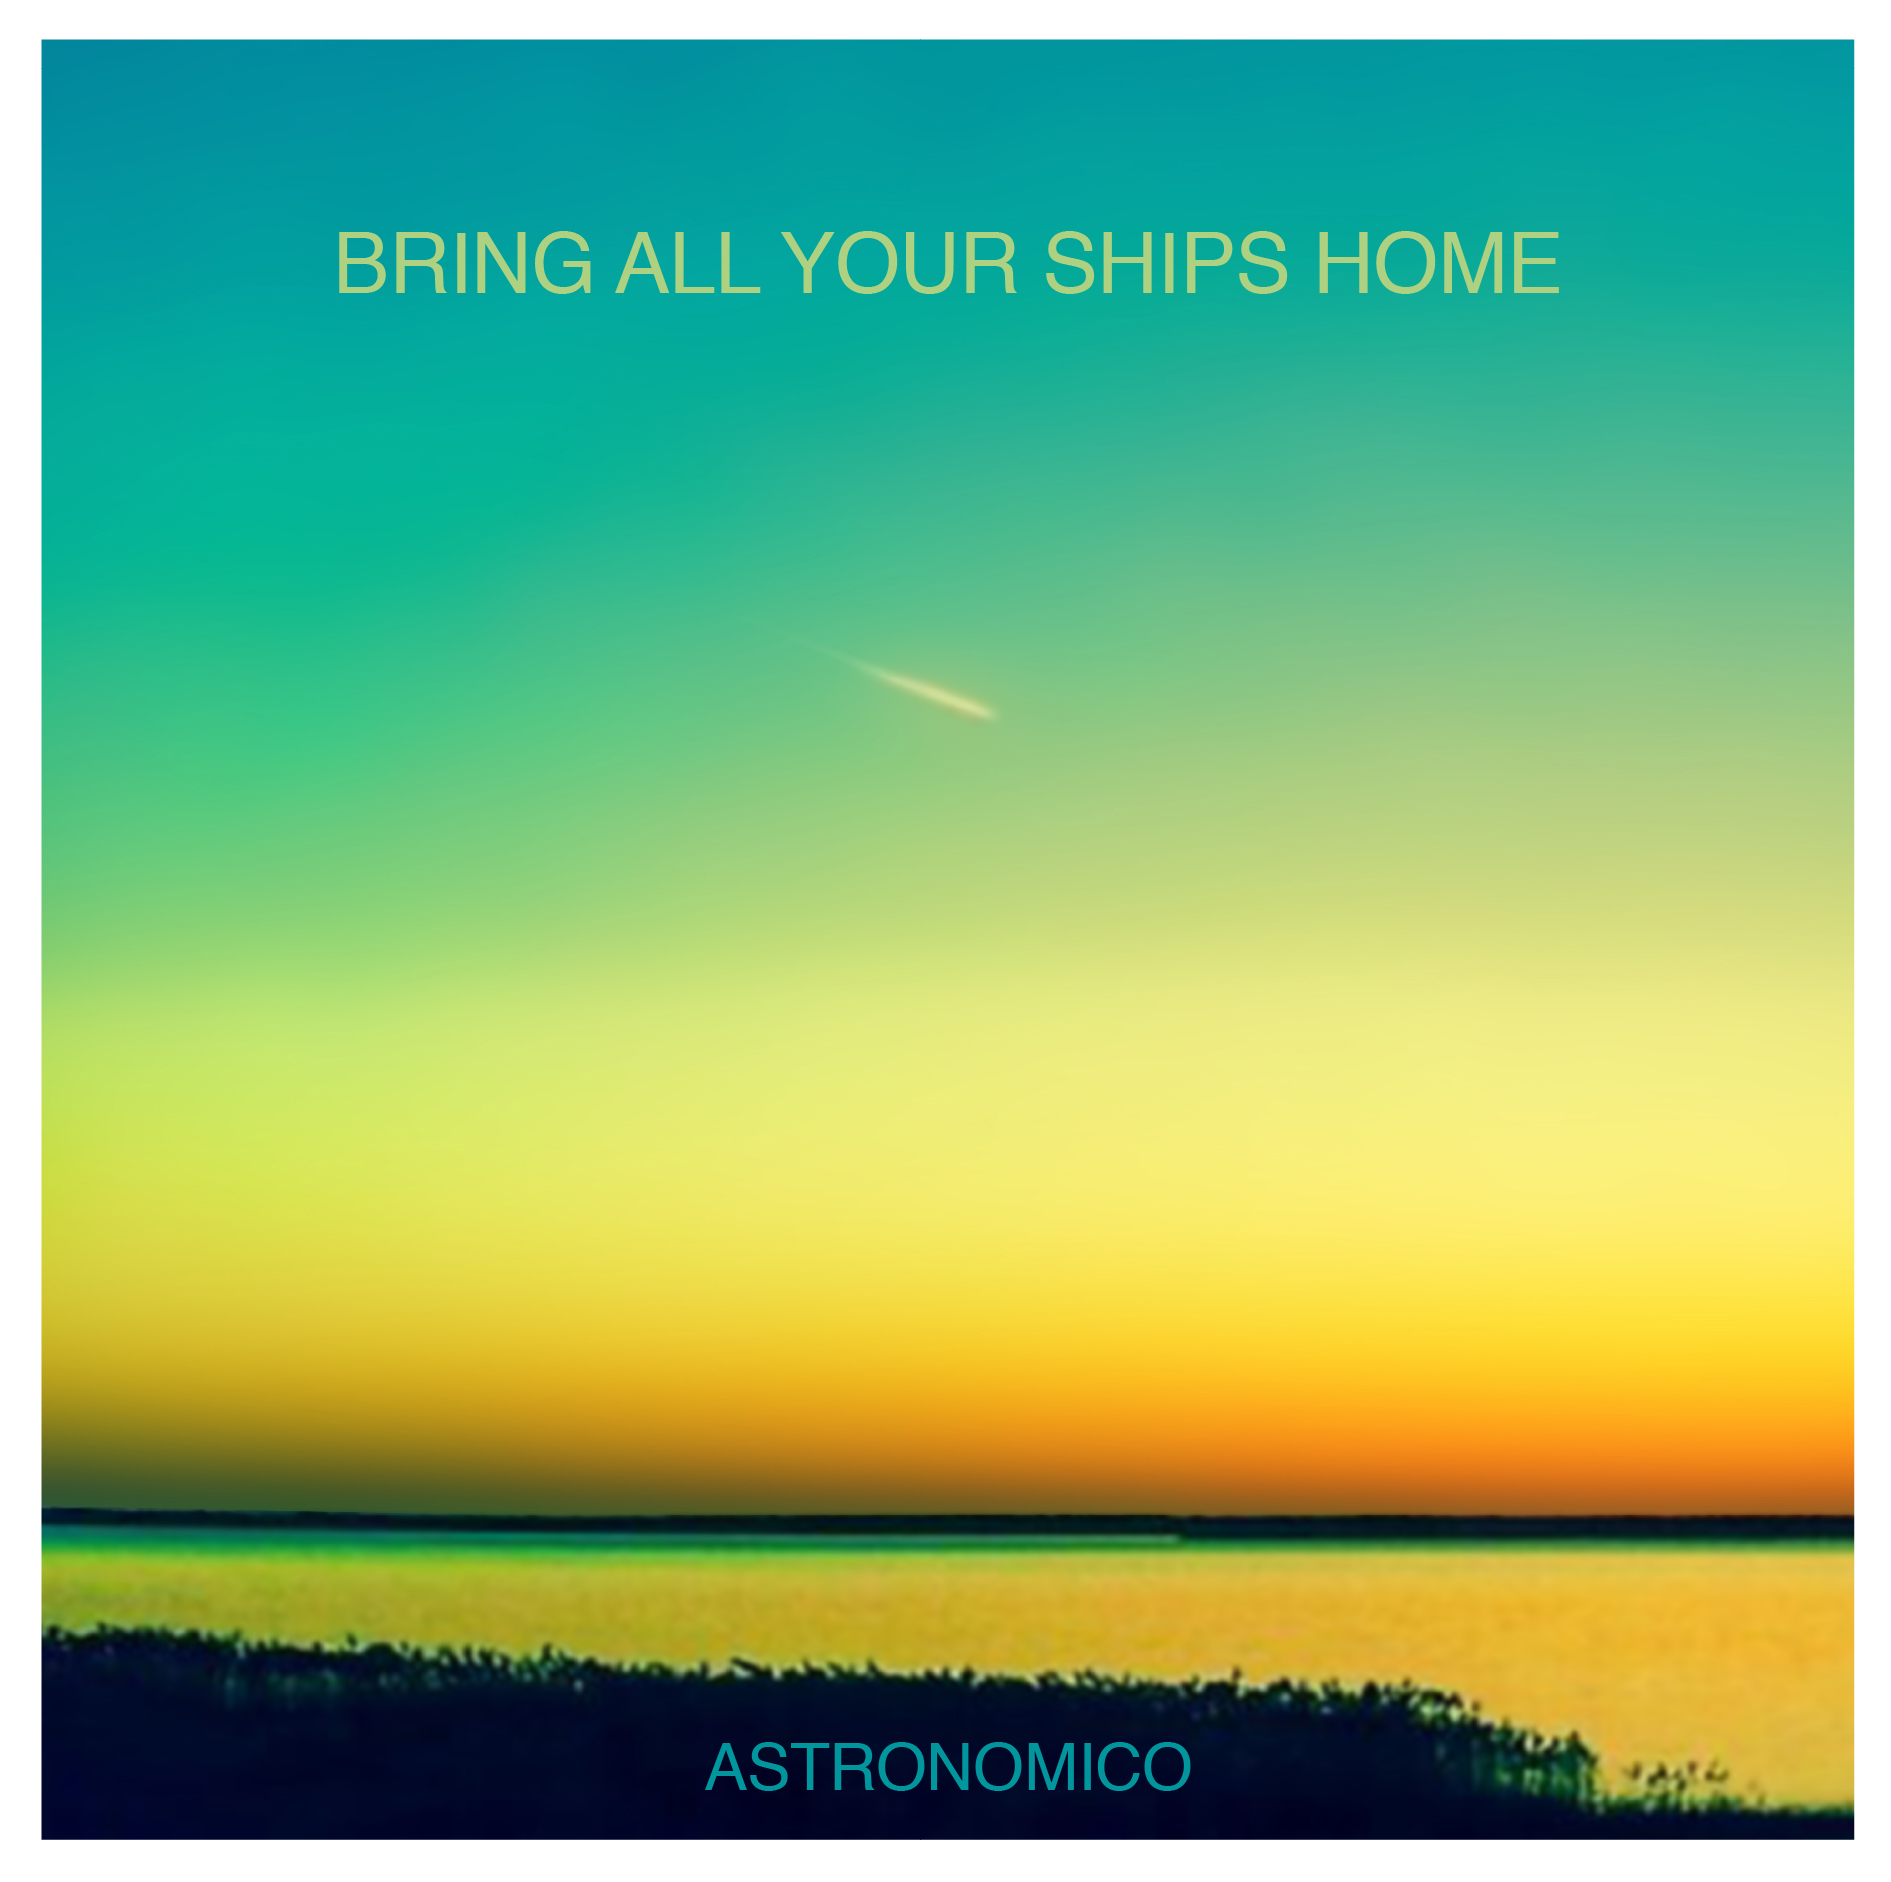 ASTRONOMICO_BRING ALL YOUR SHIPS HOME COVER-01 2.jpg